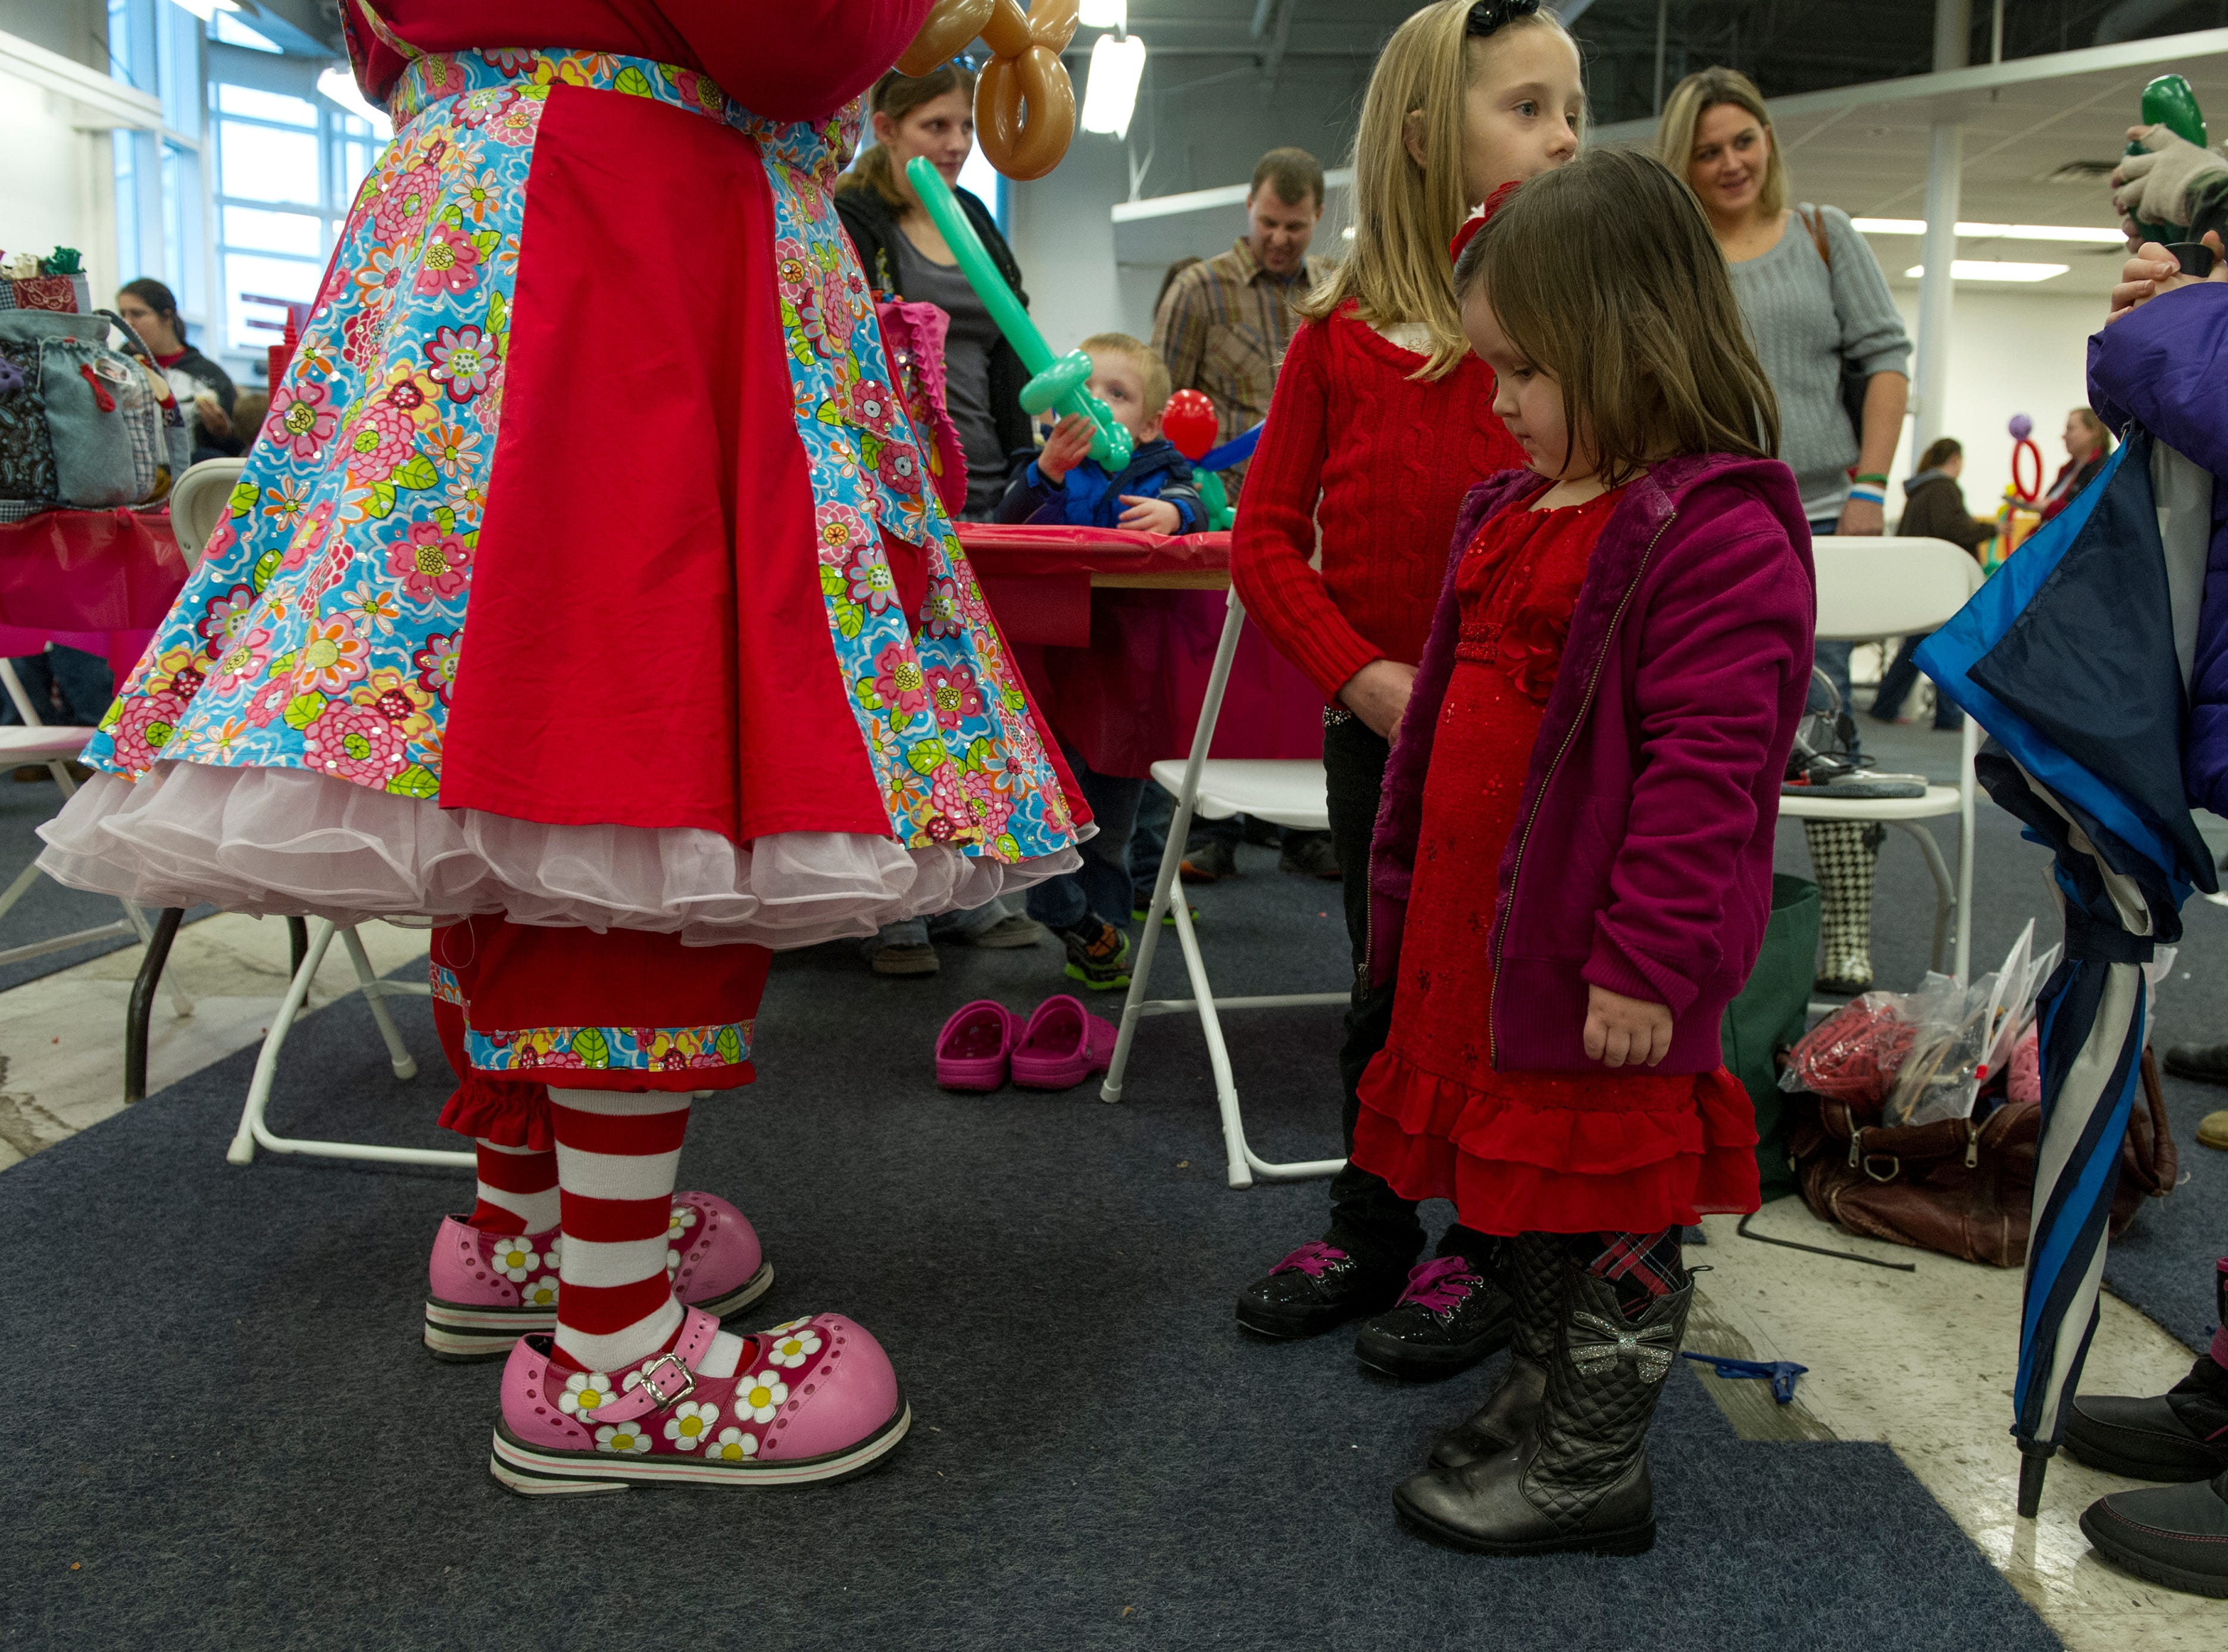 Marley Ochsner, 3, of Evansville scopes out Sparkles the clown and her giant shoes during Santa's Workshop put on by the organizers for the Christmas on North Main parade held inside the old CVS on Main Street in Evansville Sunday Nov. 23, 2014. The parade was cancelled due to rain.